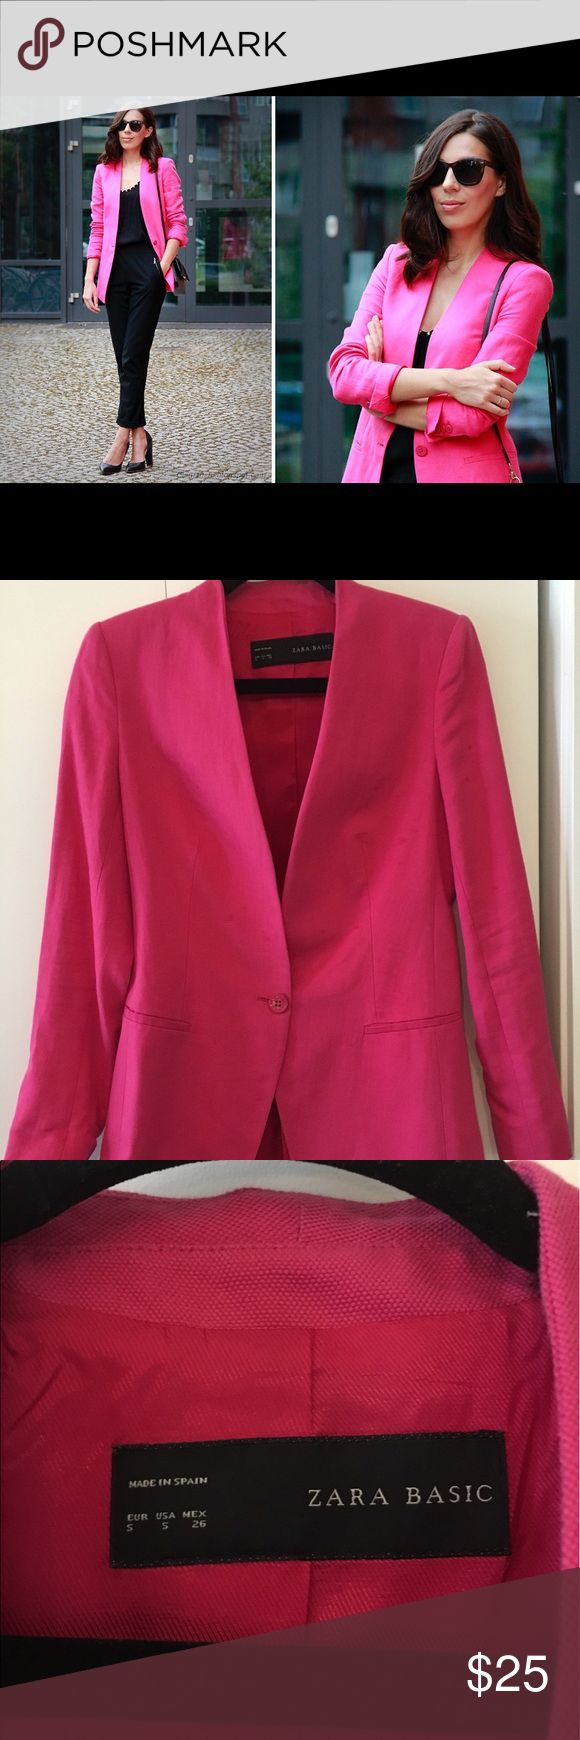 Zara pink blazer Lovely Zara basic blazer to wear for work or casually. Can be worn for any season. Beautiful hot pink color. Only worn a few times. Selling because doesn't fit. Back has seam slightly stretched (as seen in picture). Comes from a smoke & pet free home. Clearing out closet! Make an offer! Zara Jackets & Coats Blazers